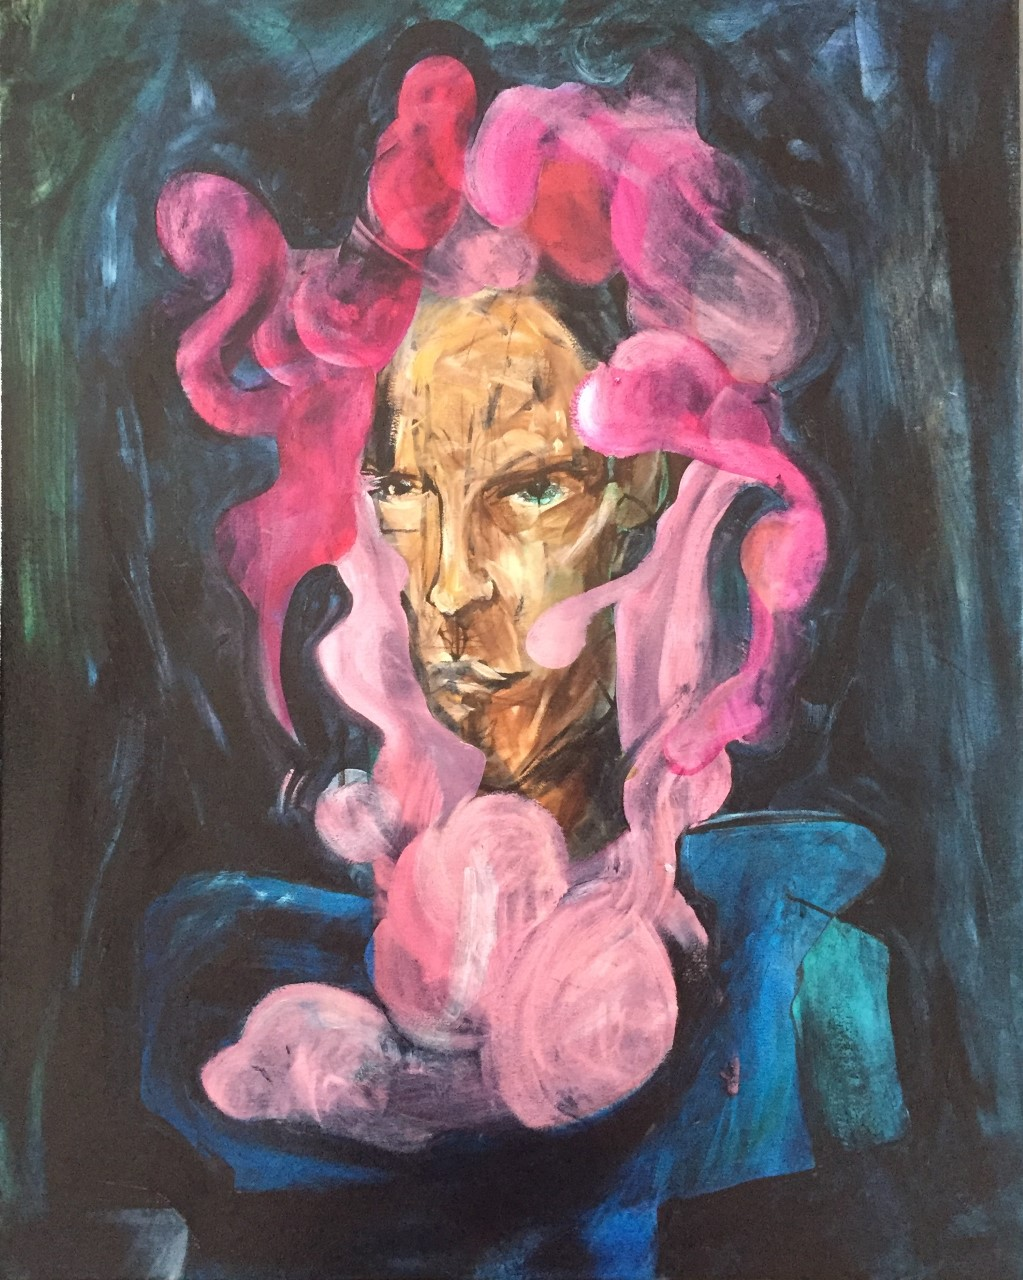 Feconded man _oil on canvas_ 24x30 inch  2018 1100 doll.jpg